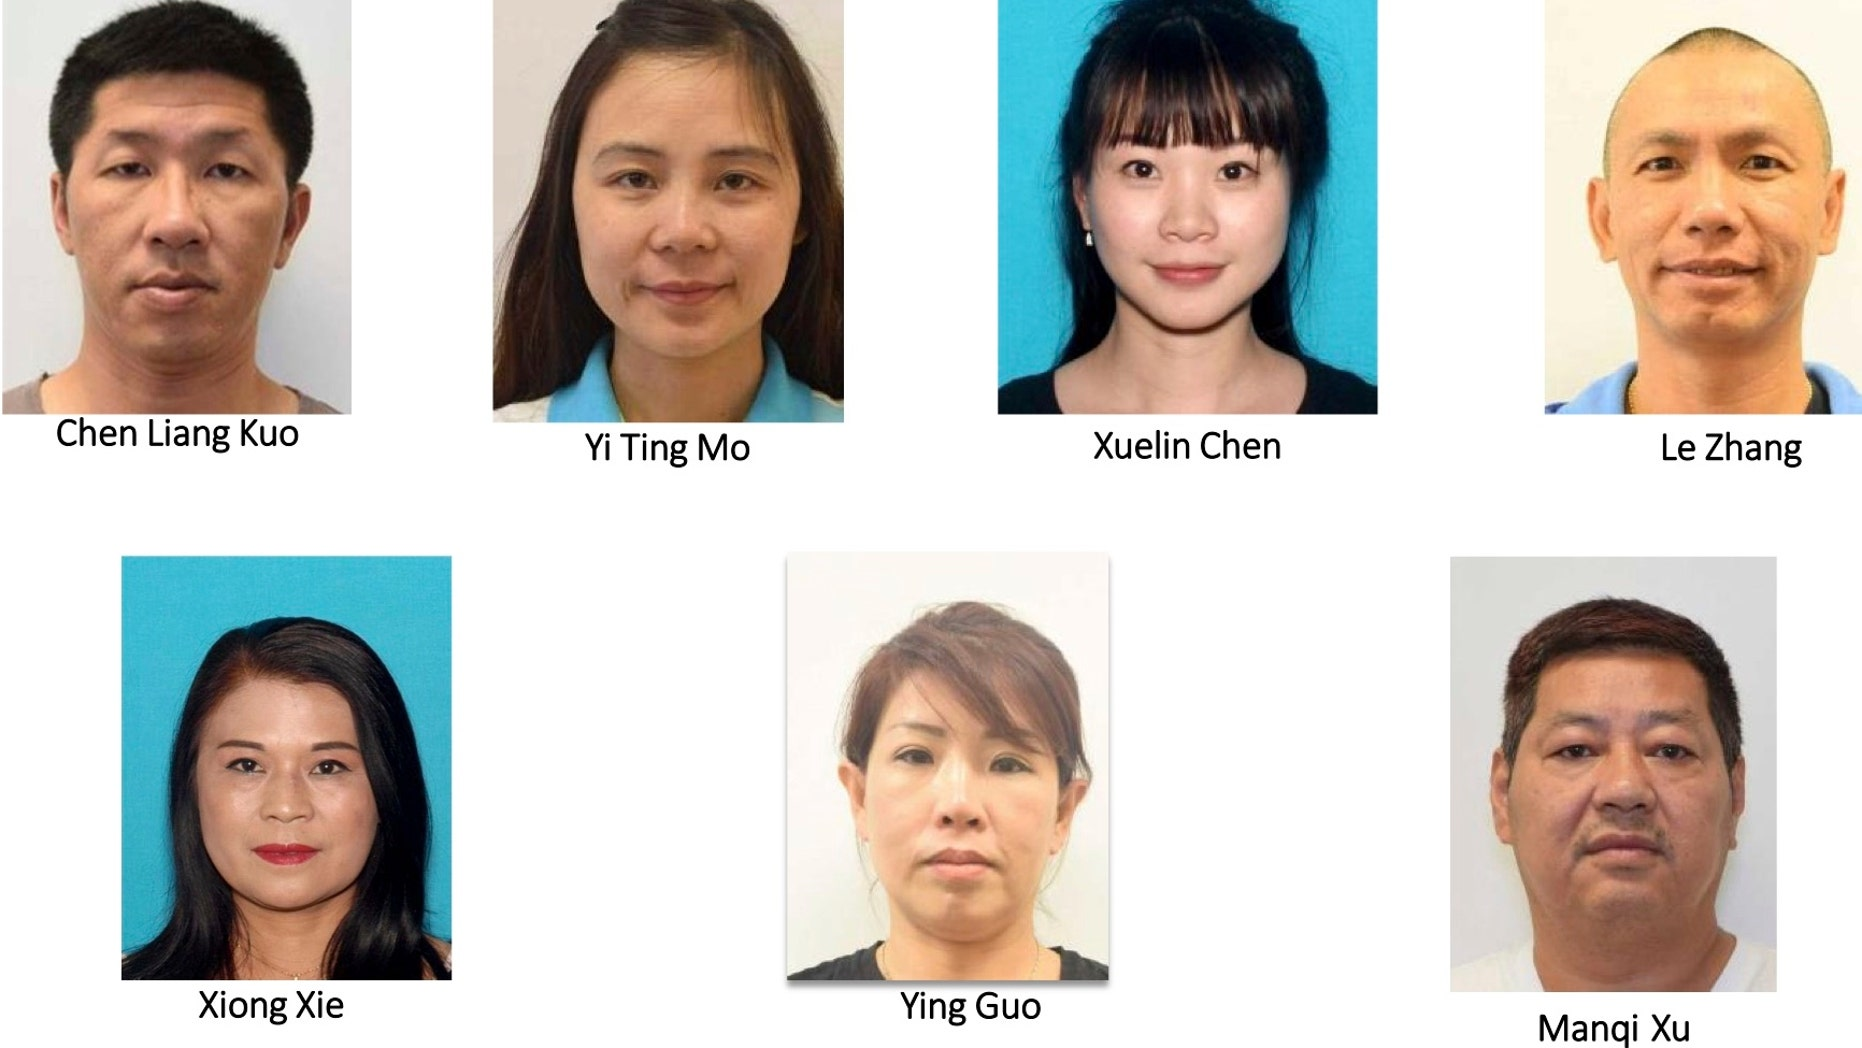 Operation 'Bad Apple' ensnares 12 businesses in human trafficking sting